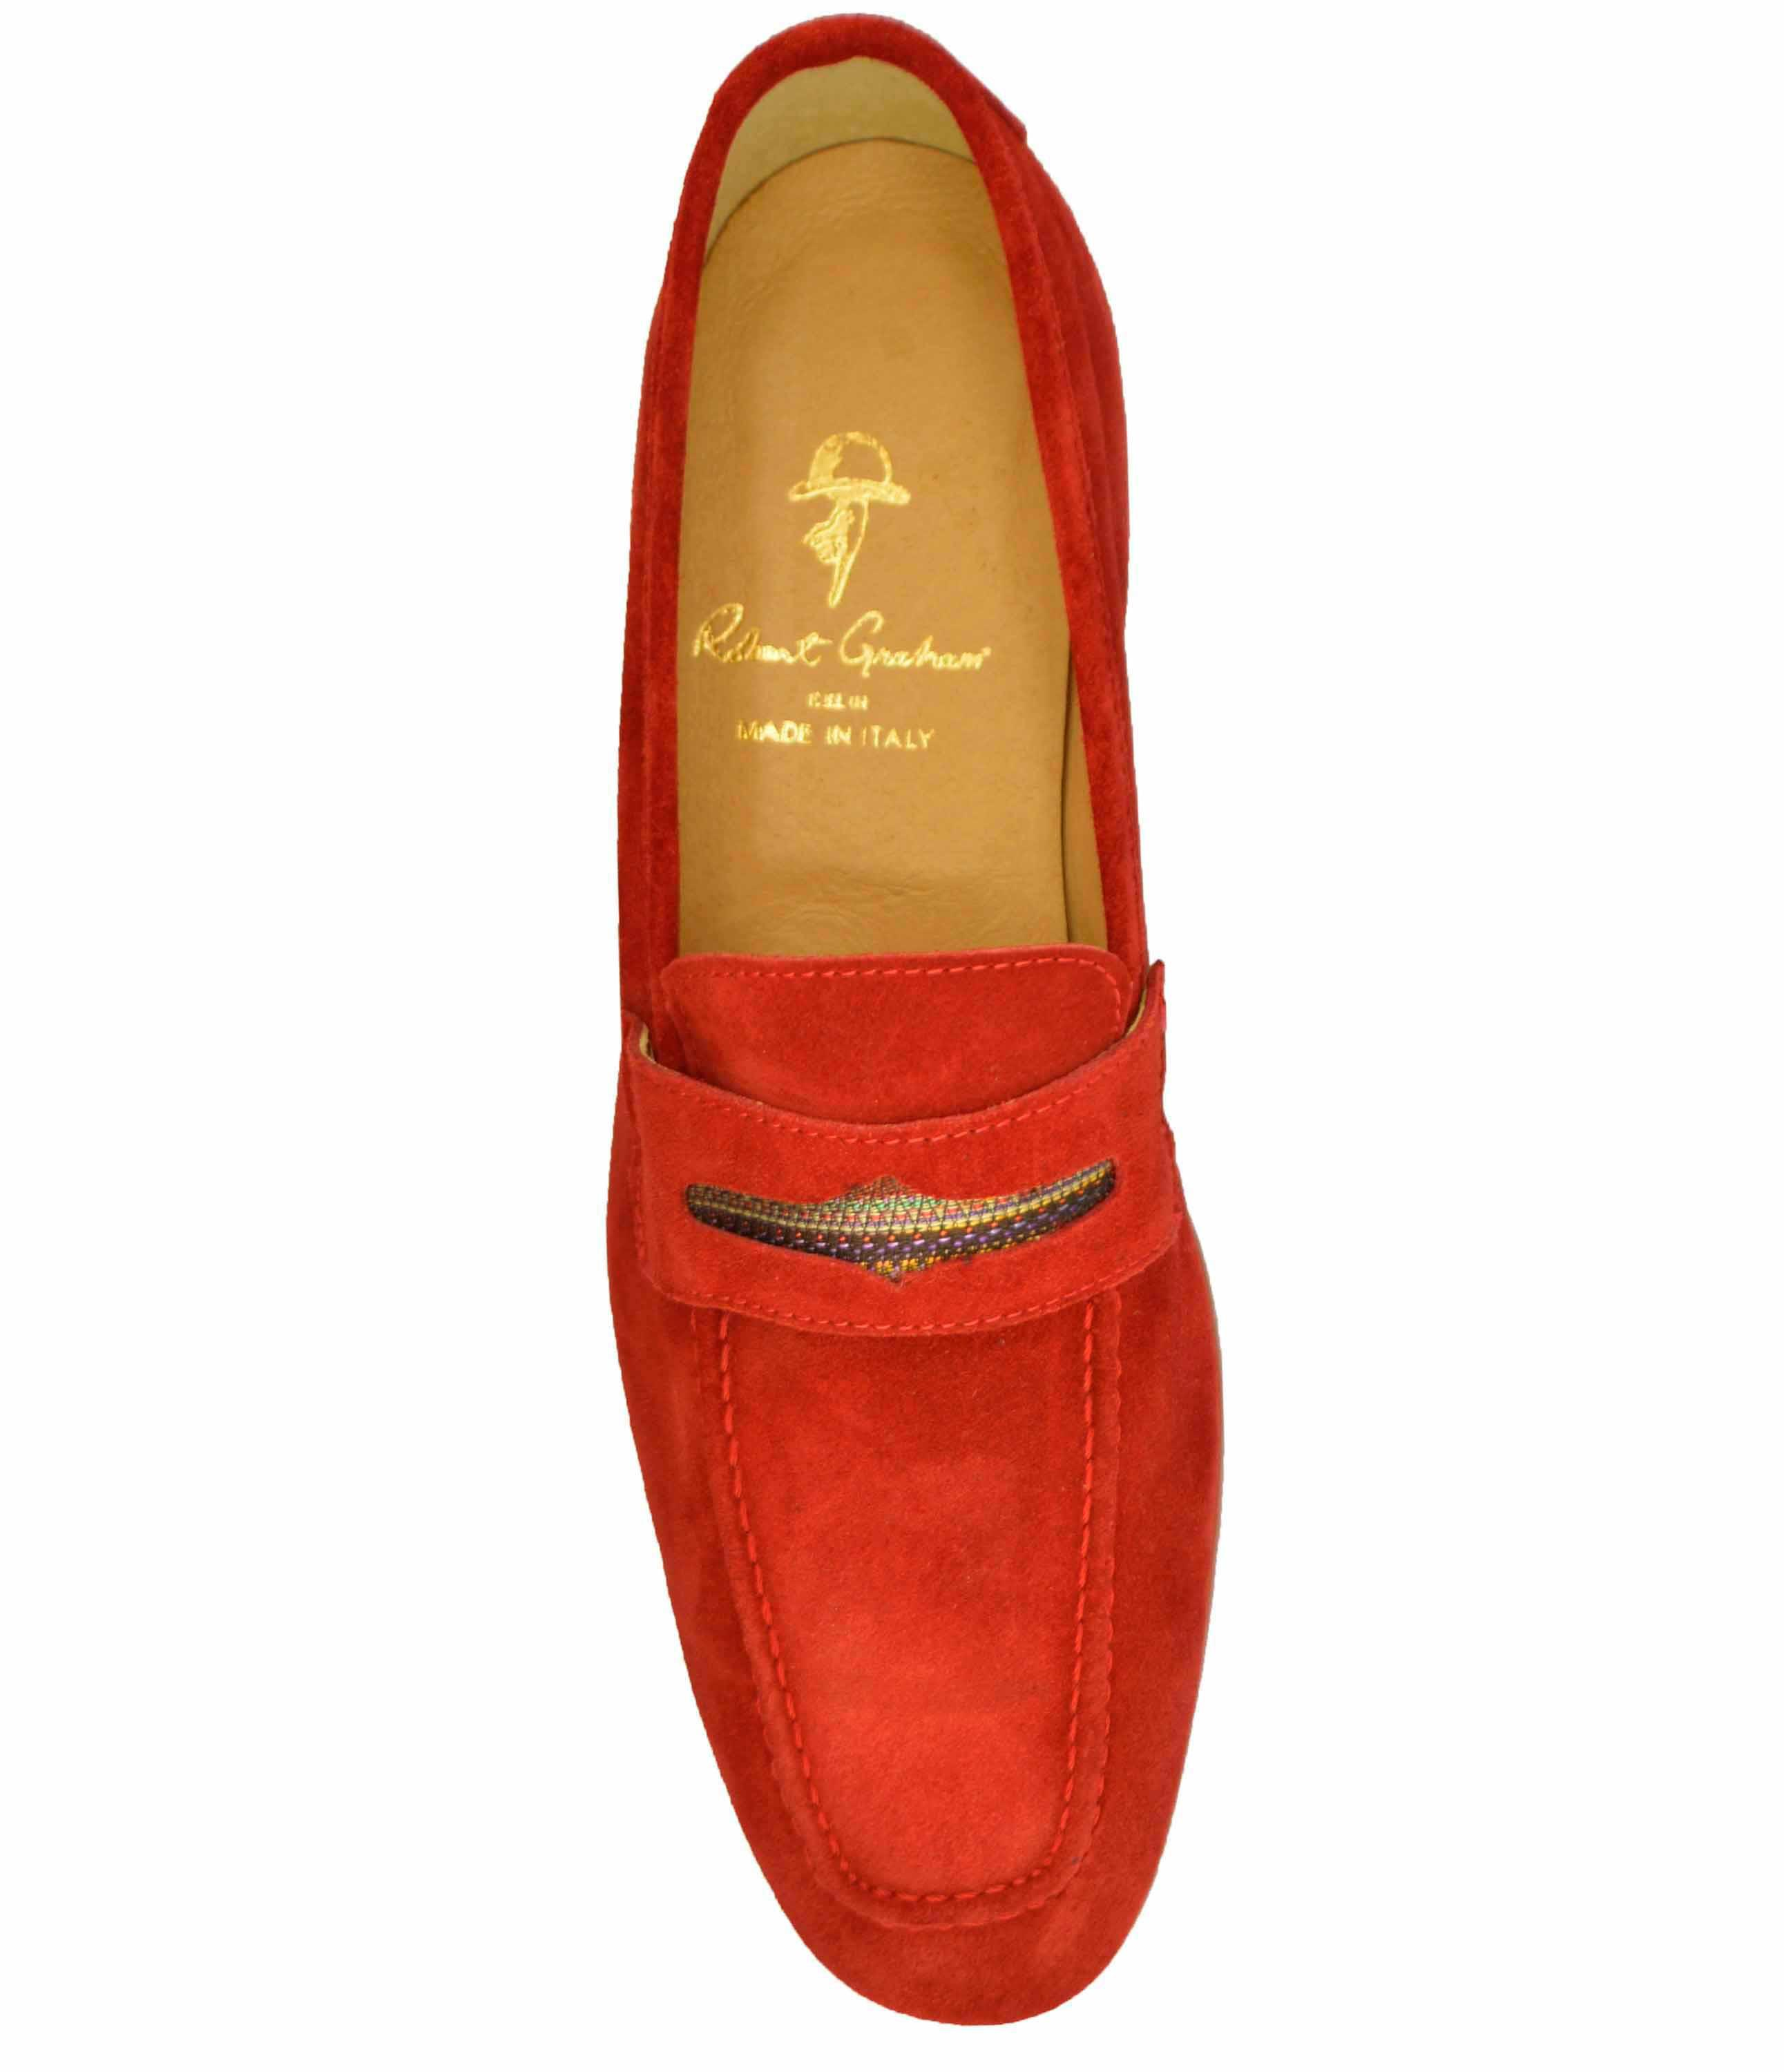 Lyst - Robert Graham Sand Hills Suede Penny Loafer in Red ...